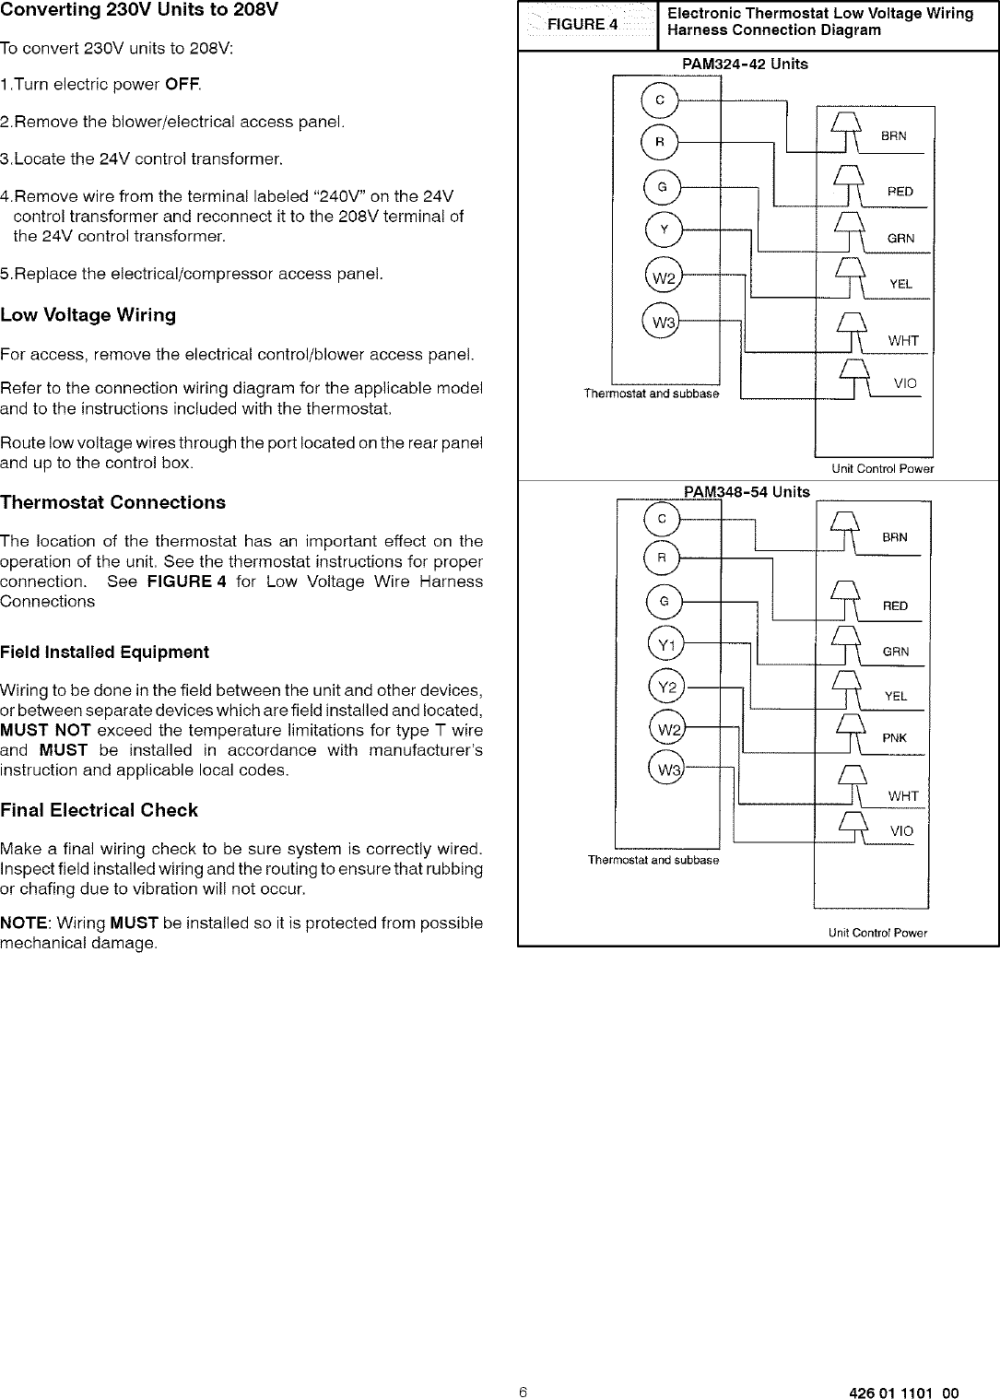 medium resolution of page 6 of 12 icp package units both units combined manual l0611131